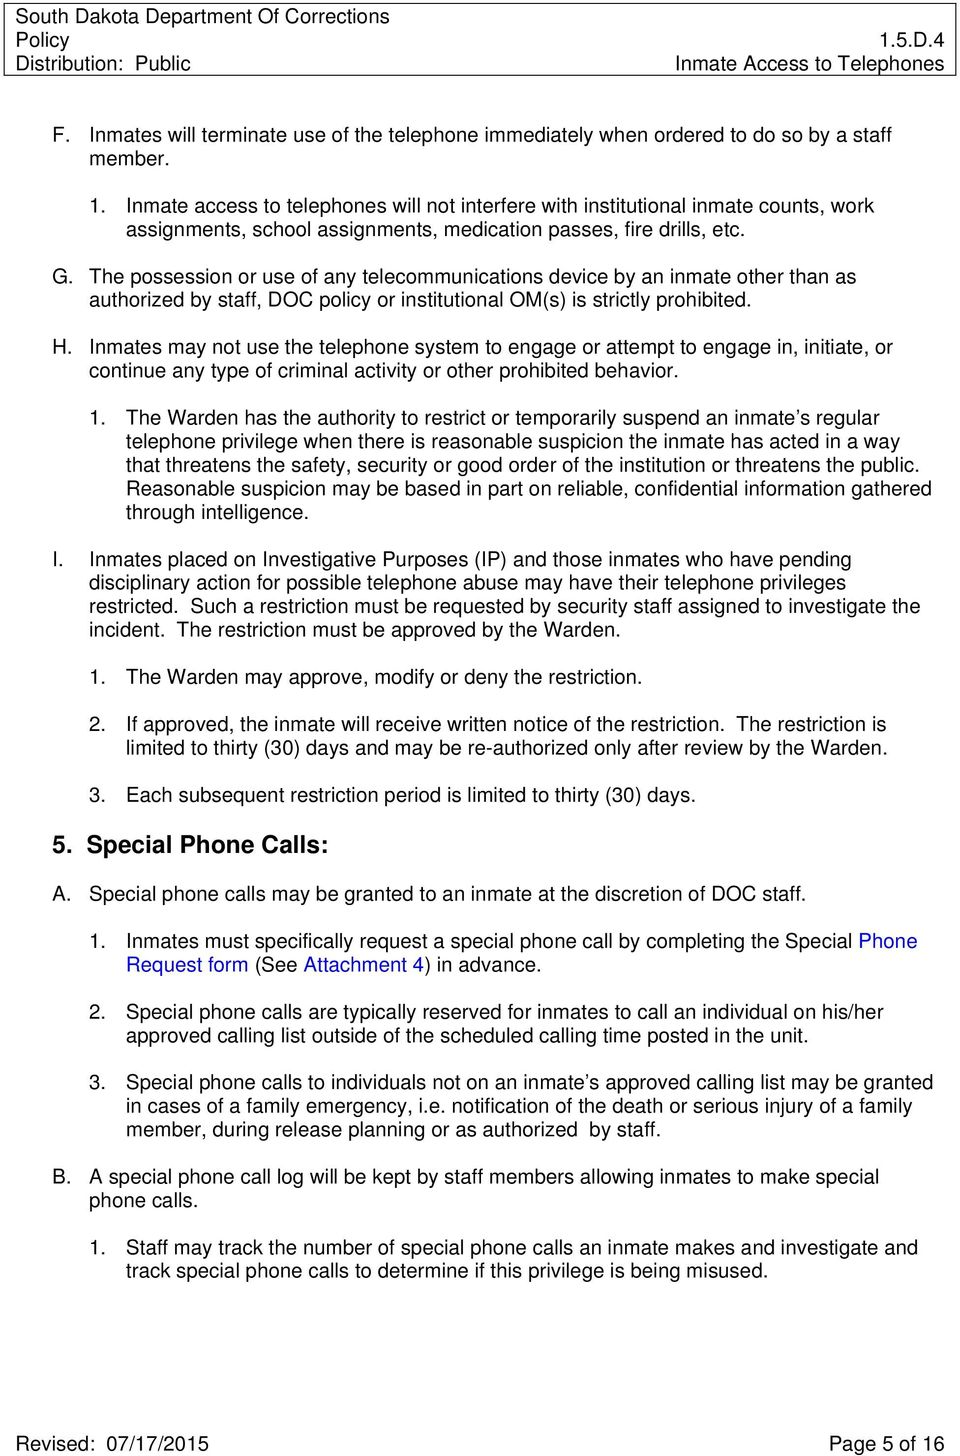 The possession or use of any telecommunications device by an inmate other than as authorized by staff, DOC policy or institutional OM(s) is strictly prohibited. H.